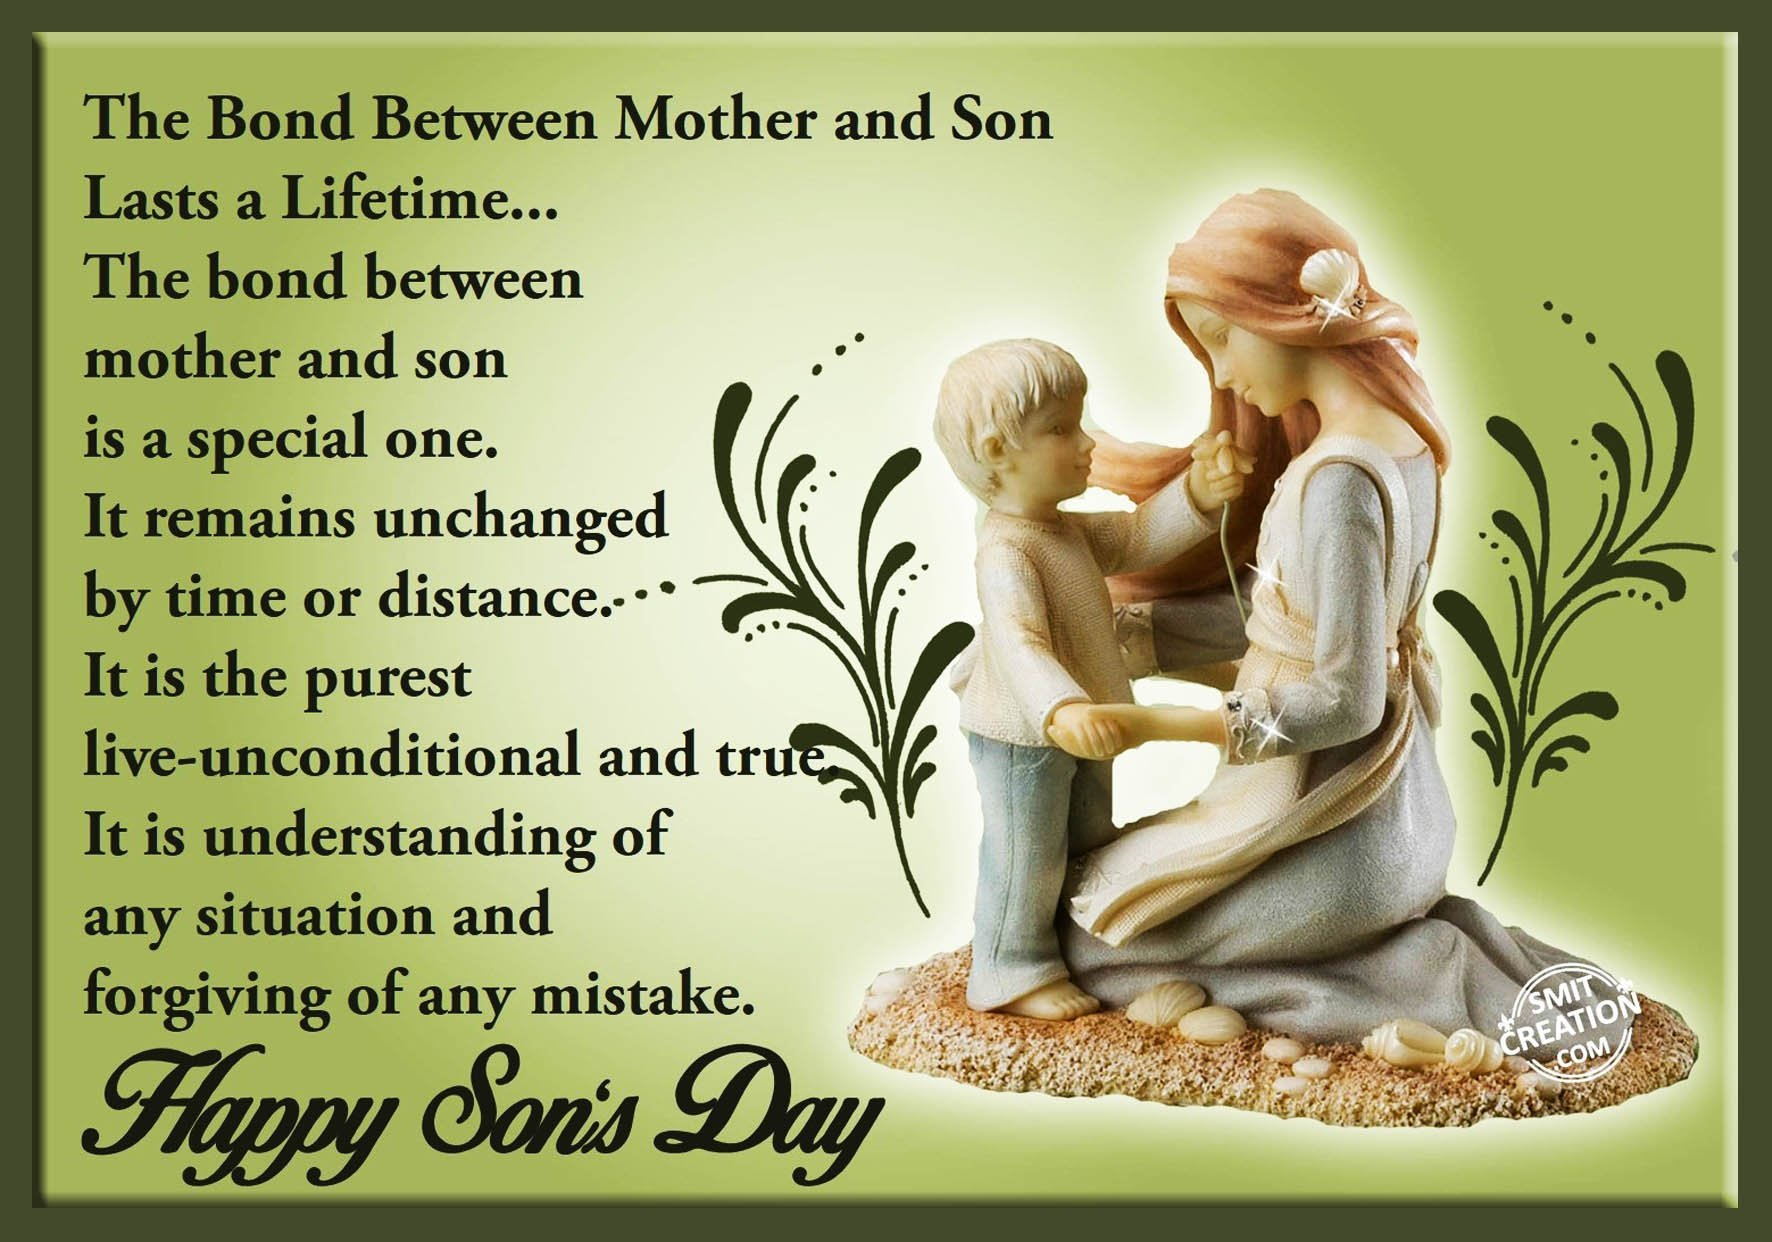 Son's Day Pictures and Graphics - SmitCreation.com